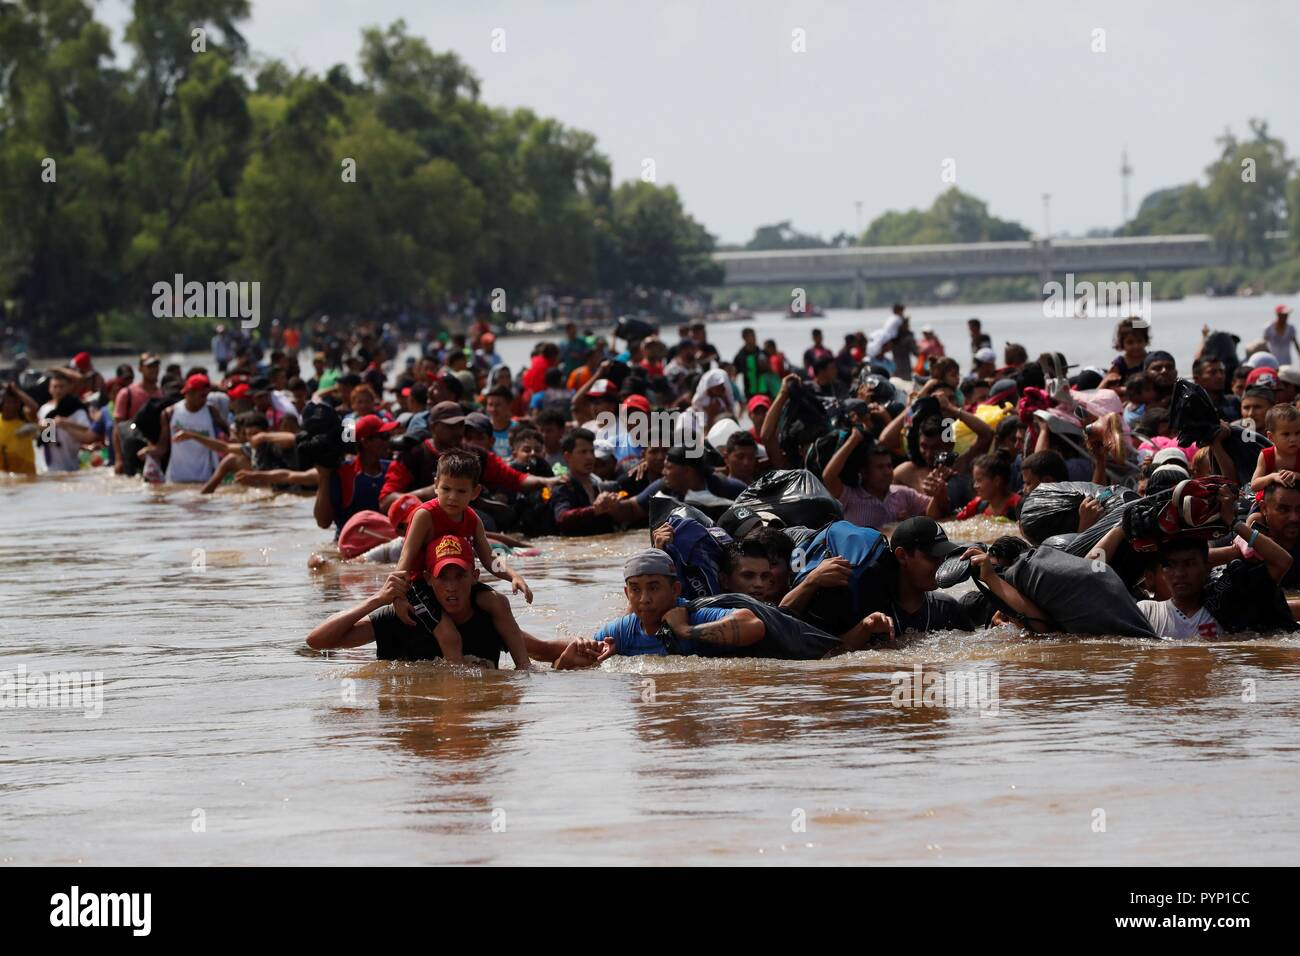 Tecun Uman, Guatemala. 29th Oct, 2018. Members of the second migrants' caravan, mostly Hondurans, cross the Suchiate river, which separates Guatemala and Mexico, in Tecun Uman, Guatemala, 29 October 2018. This is the second Central-American migrants caravan heading to the United States after past 13 October the first left San Pedro Sula. Credit: Esteban Biba/EFE/Alamy Live News - Stock Image